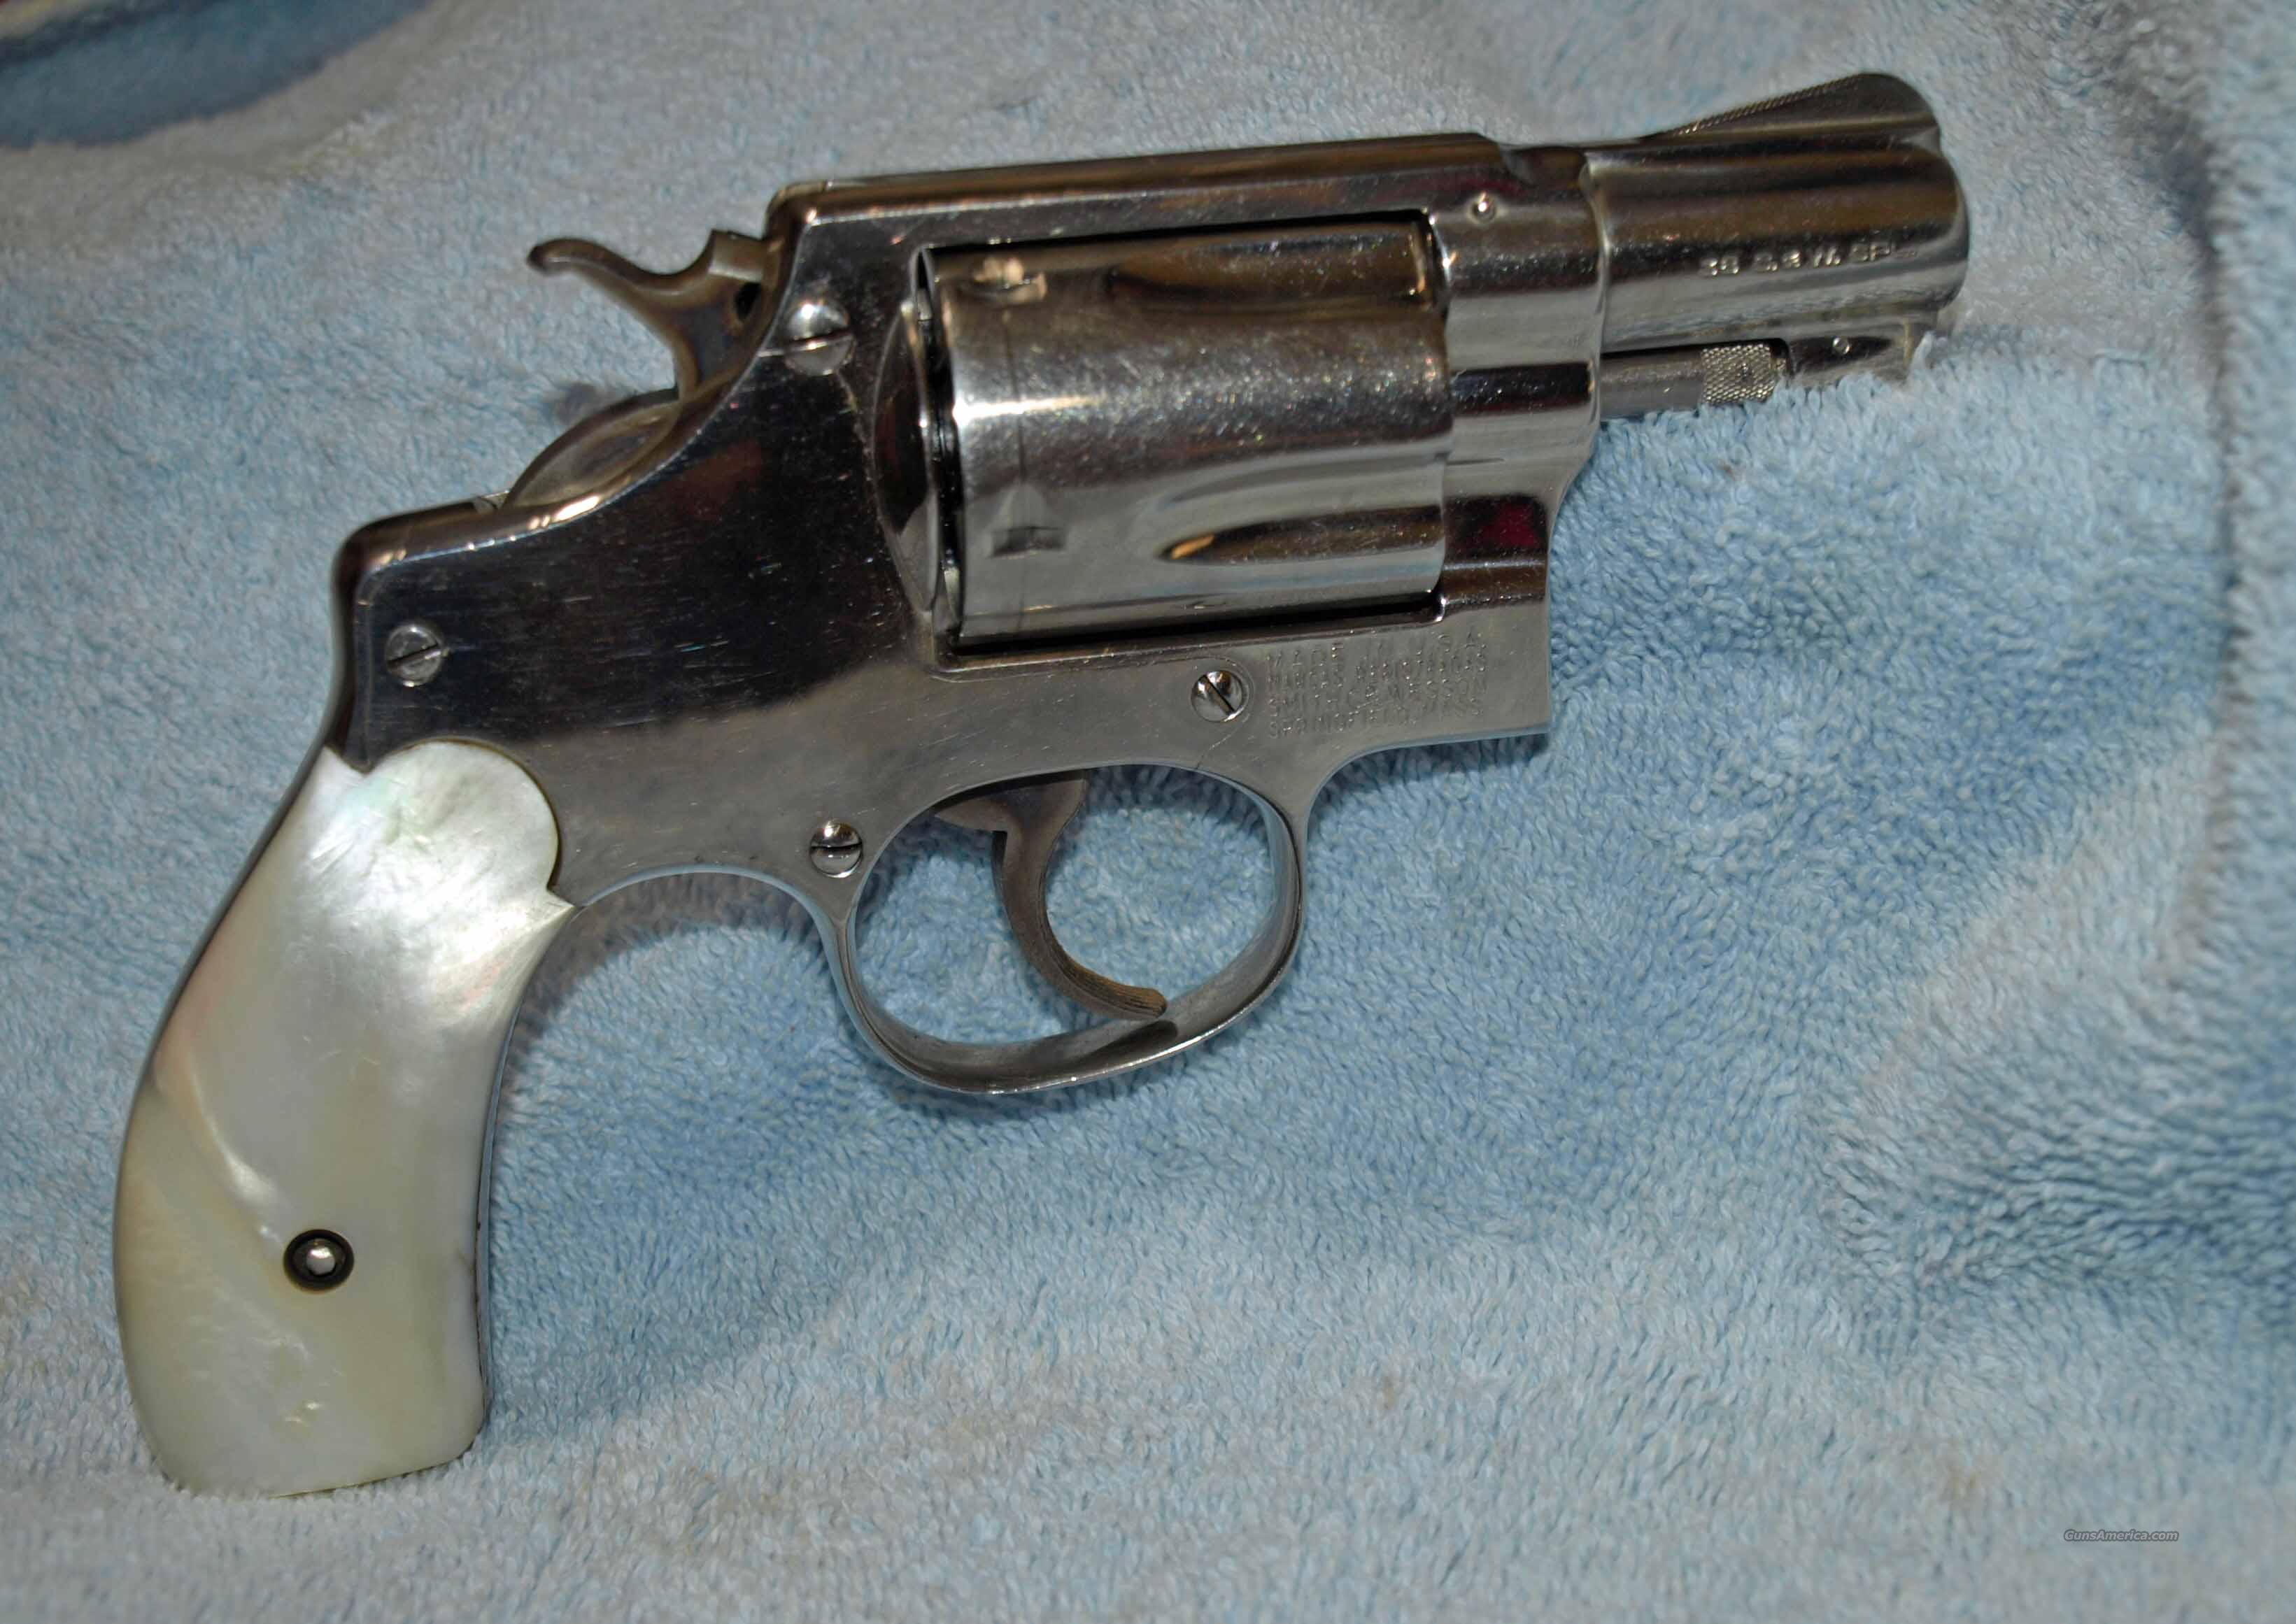 Early S&W Chief's Special  Guns > Pistols > Smith & Wesson Revolvers > Pocket Pistols